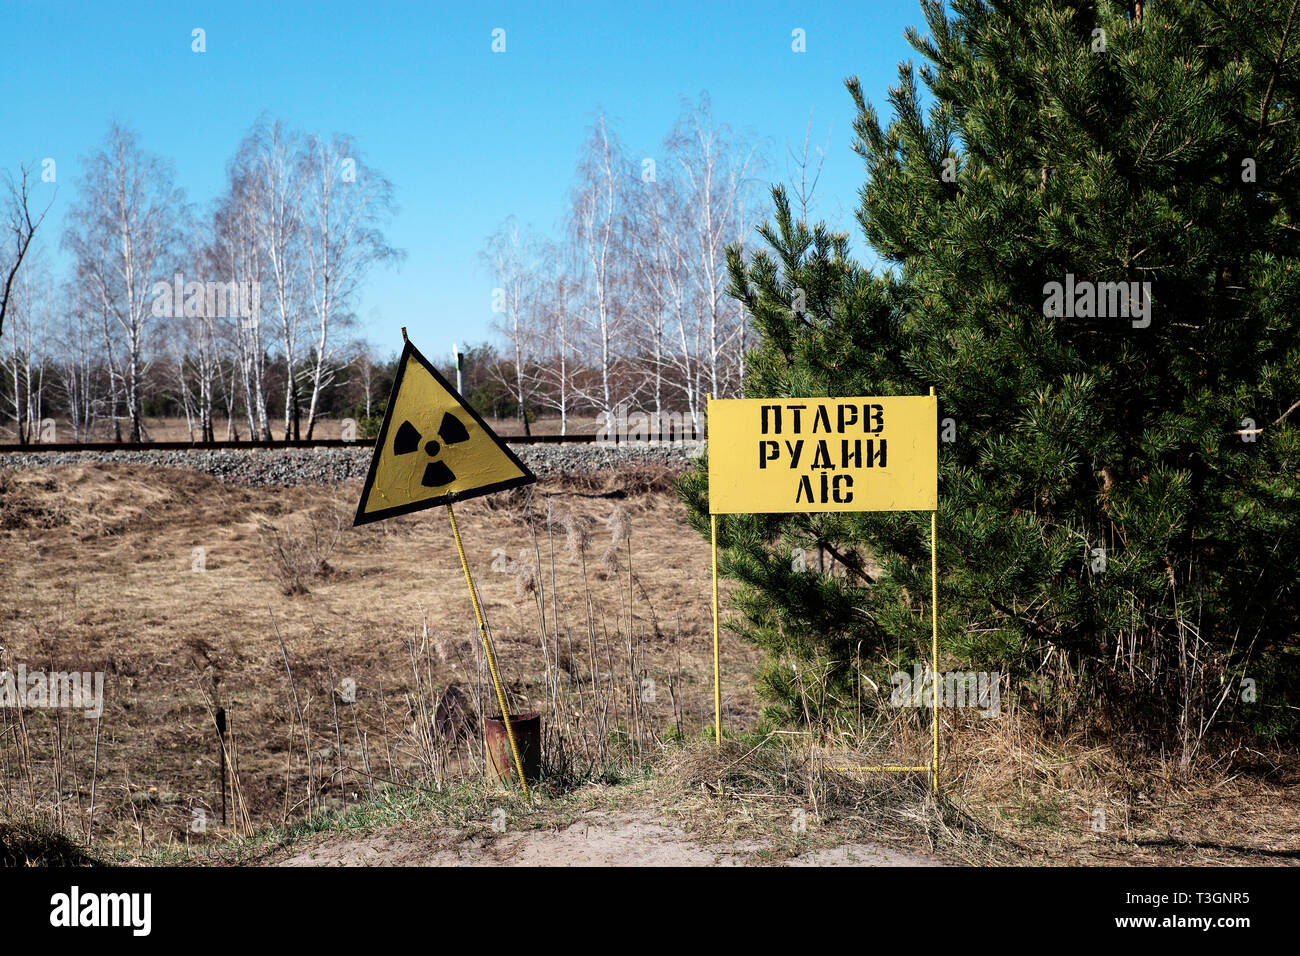 Radiation warning in the exclusion zone of Chernobyl, Ukraine, April 2019 - Stock Image